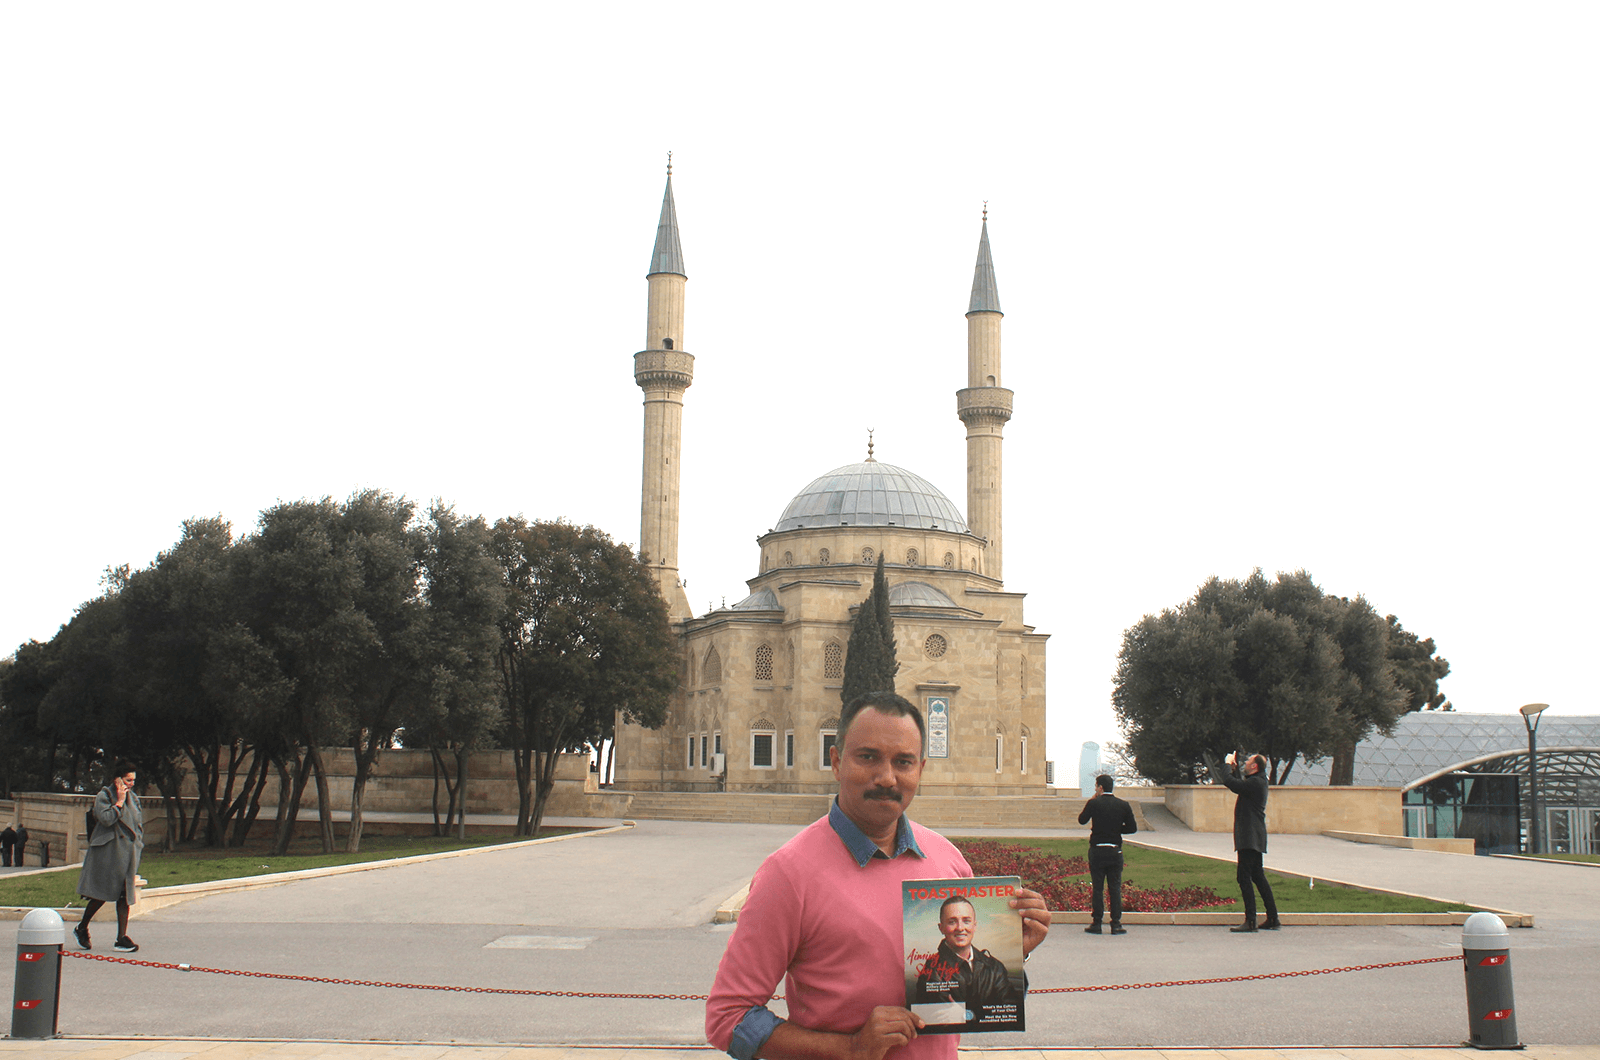 Shafeek Mohammed of Bangalore, India, enjoys a trip through Baku, Azerbaijan. In this photo, he poses outside the Mosque of the Martyrs, the official residence of religious representatives of the Turkish embassy.